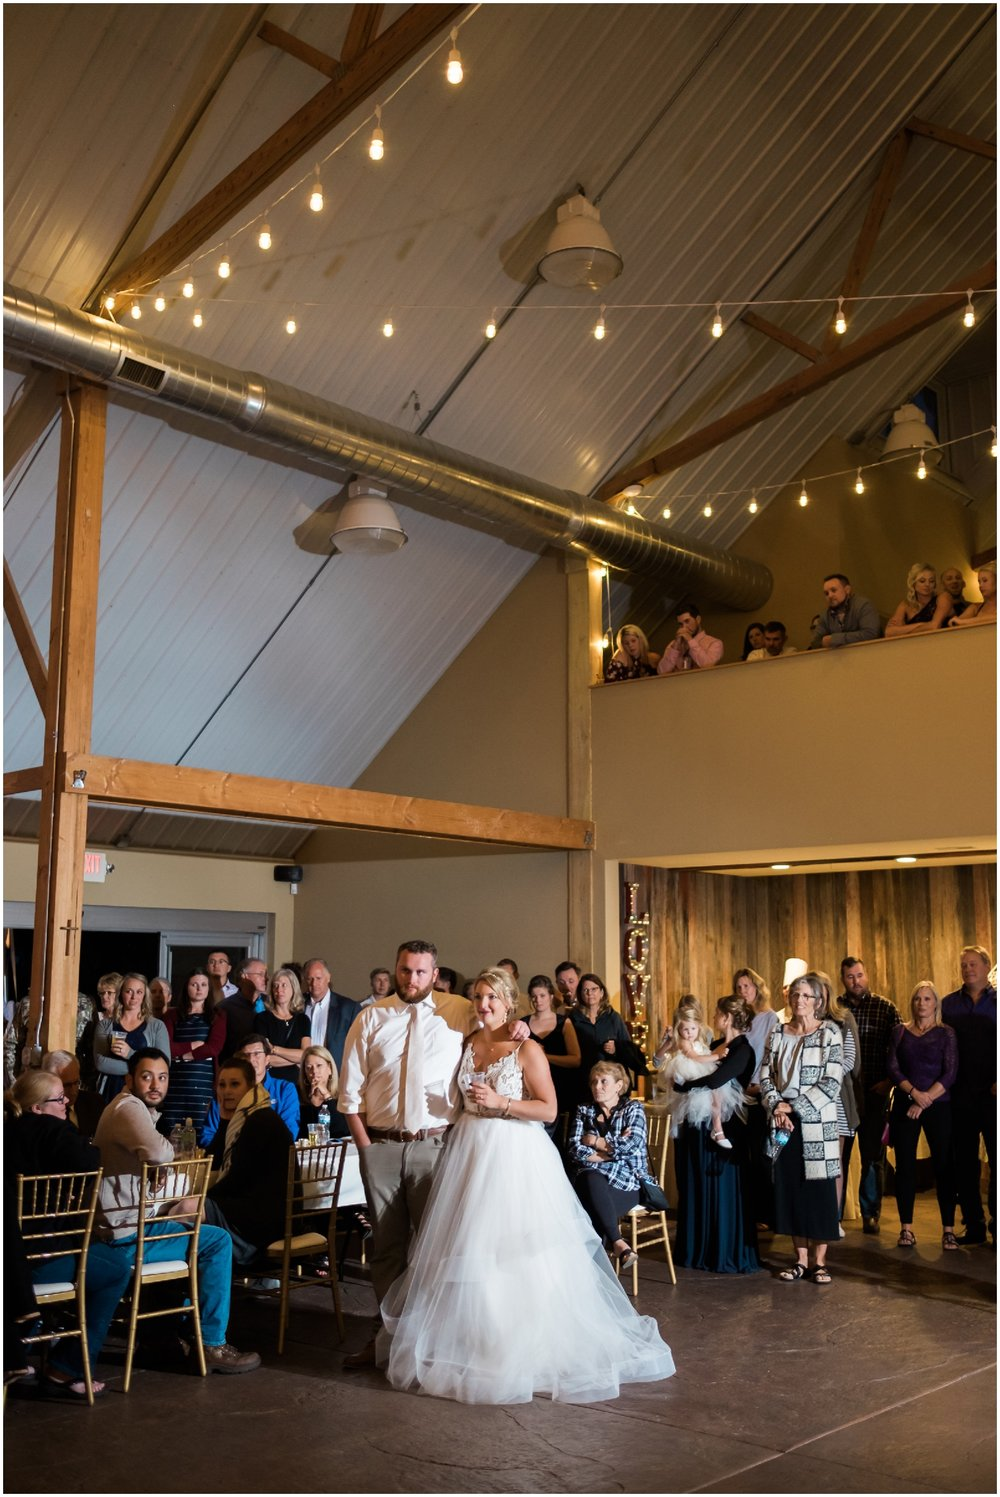 Minnesota-Wedding-Venue- Chaska-MN-Rustic-Barn-Weddings_0595.jpg